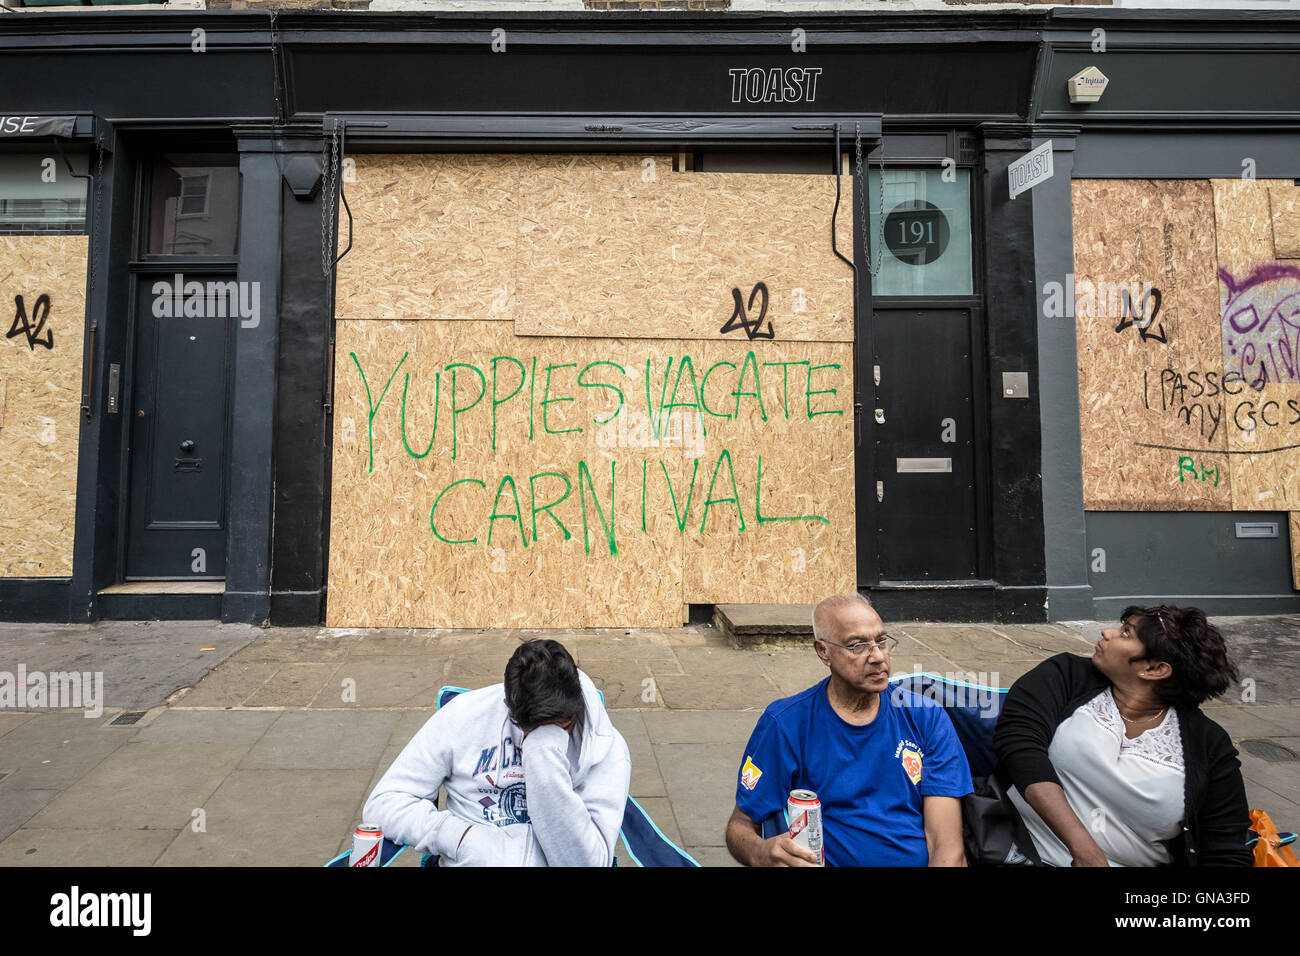 London, UK. 29th August 2016. Boarded-up local shops and businesses seen during Notting Hill Carnival 2016. Angry - Stock Image